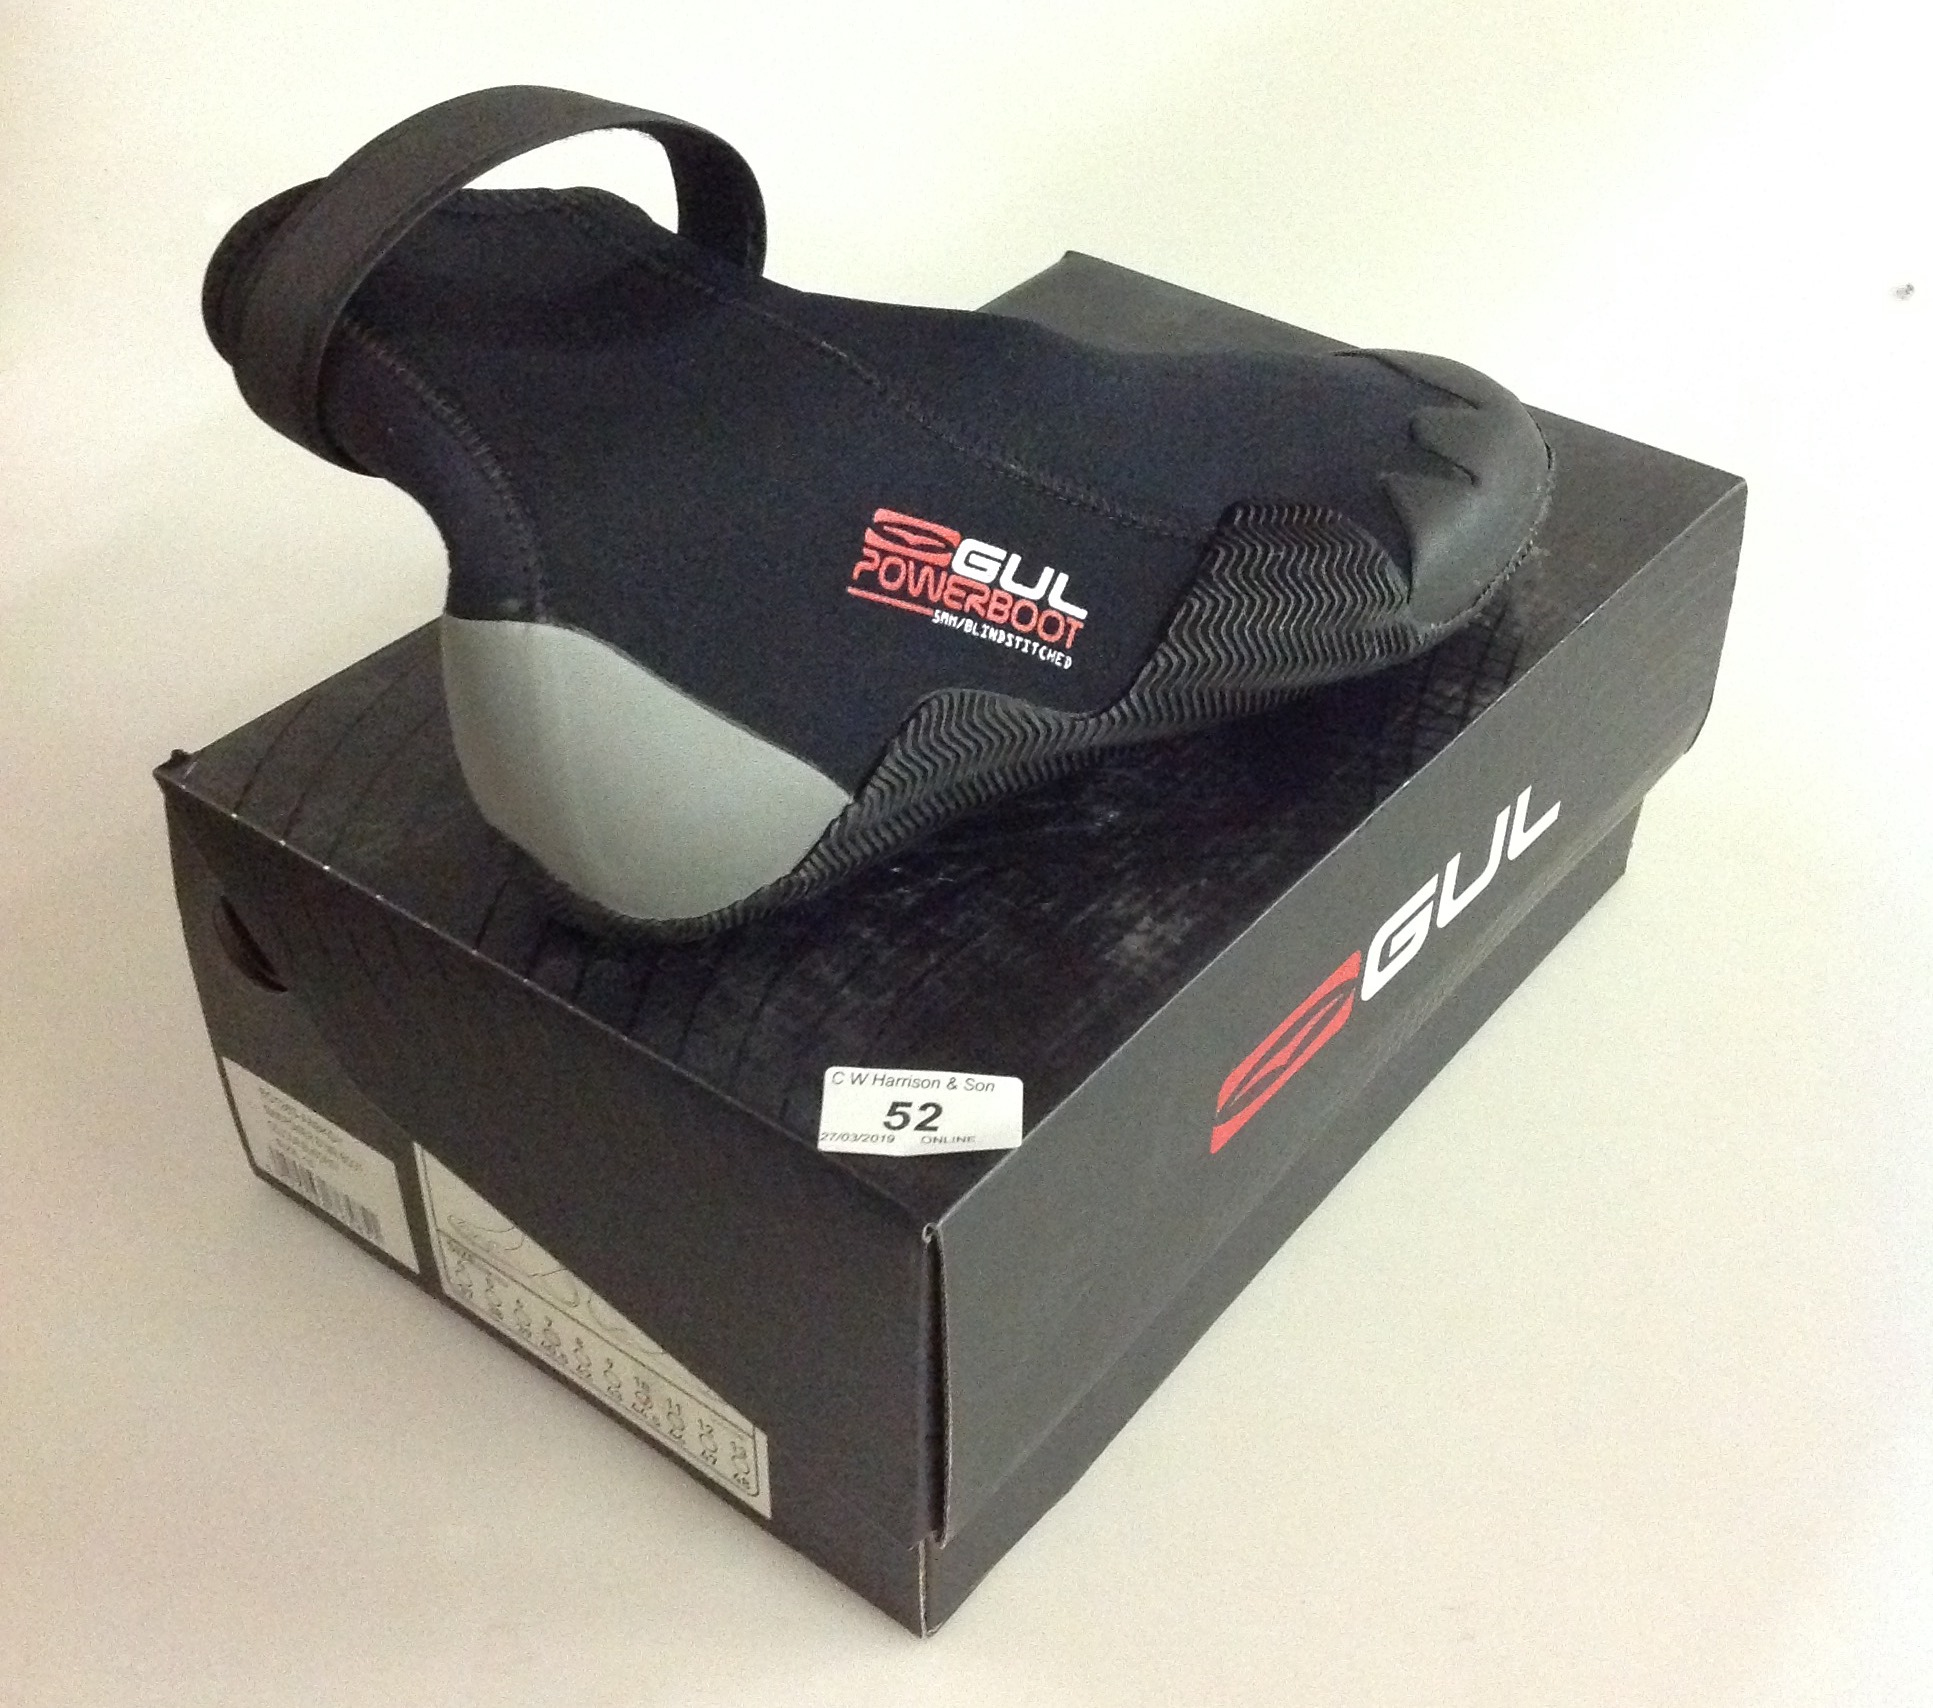 Lot 52 - Gul 5MM Power STMR boot in black and grey - size 10